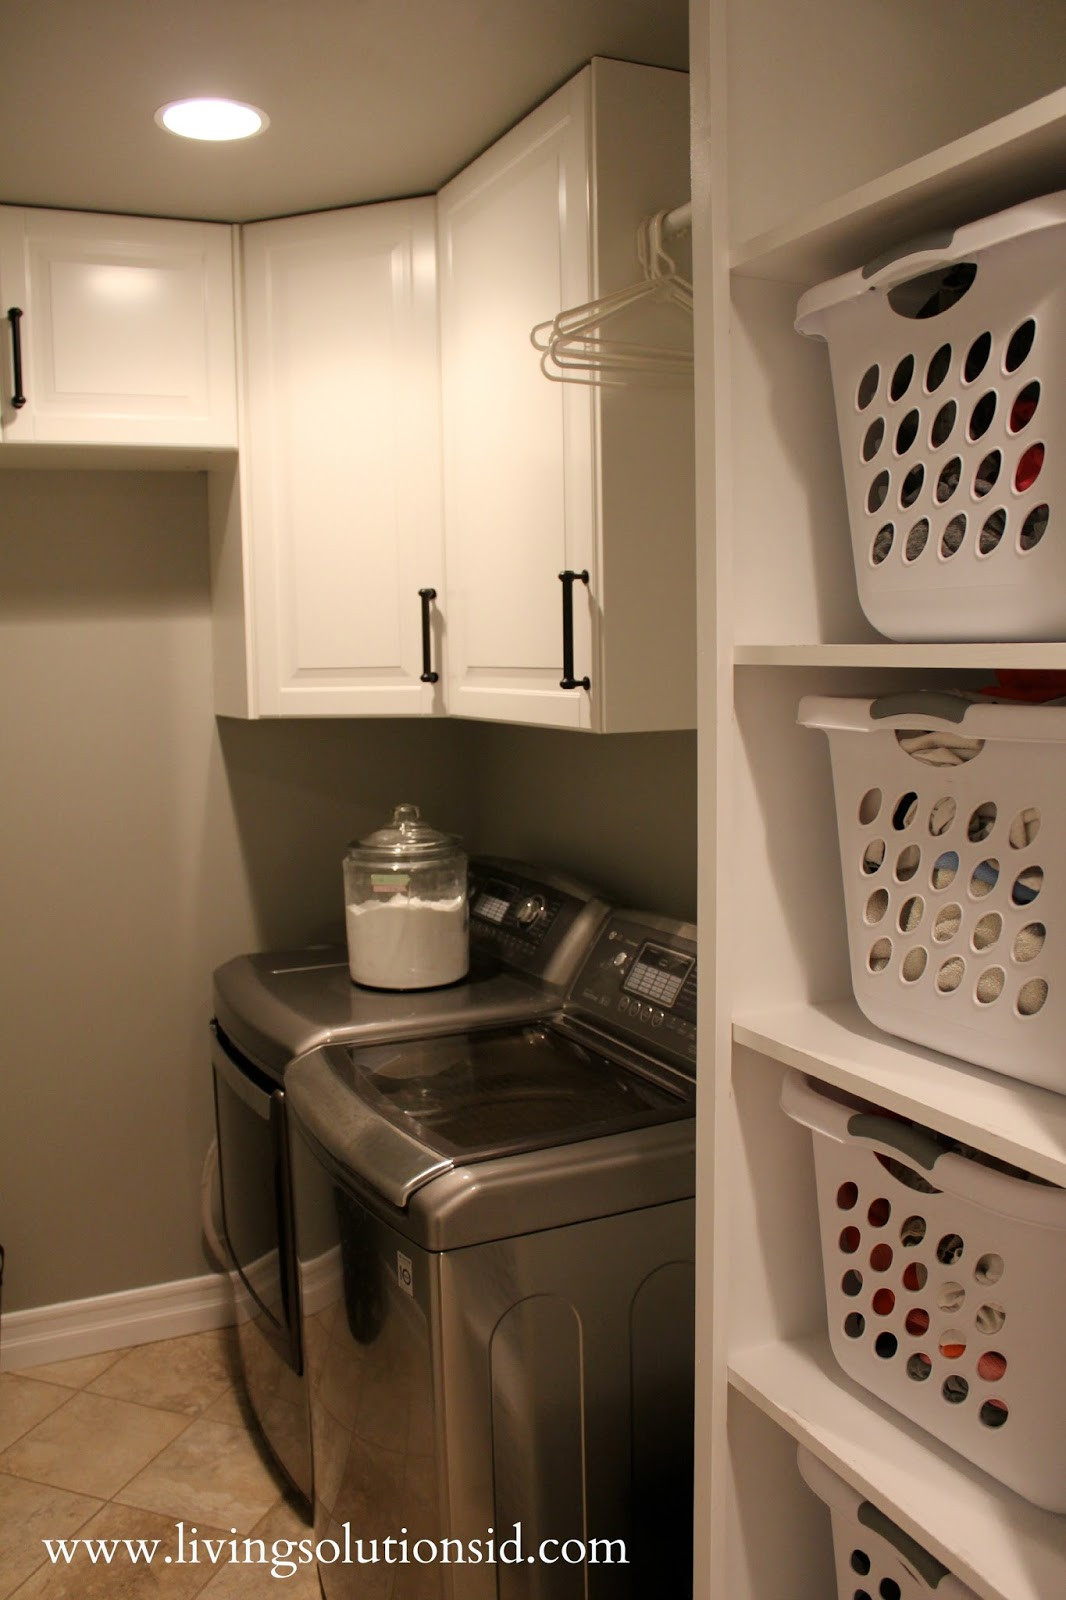 Best ideas about The Laundry Room . Save or Pin The Laundry Room Today Now.